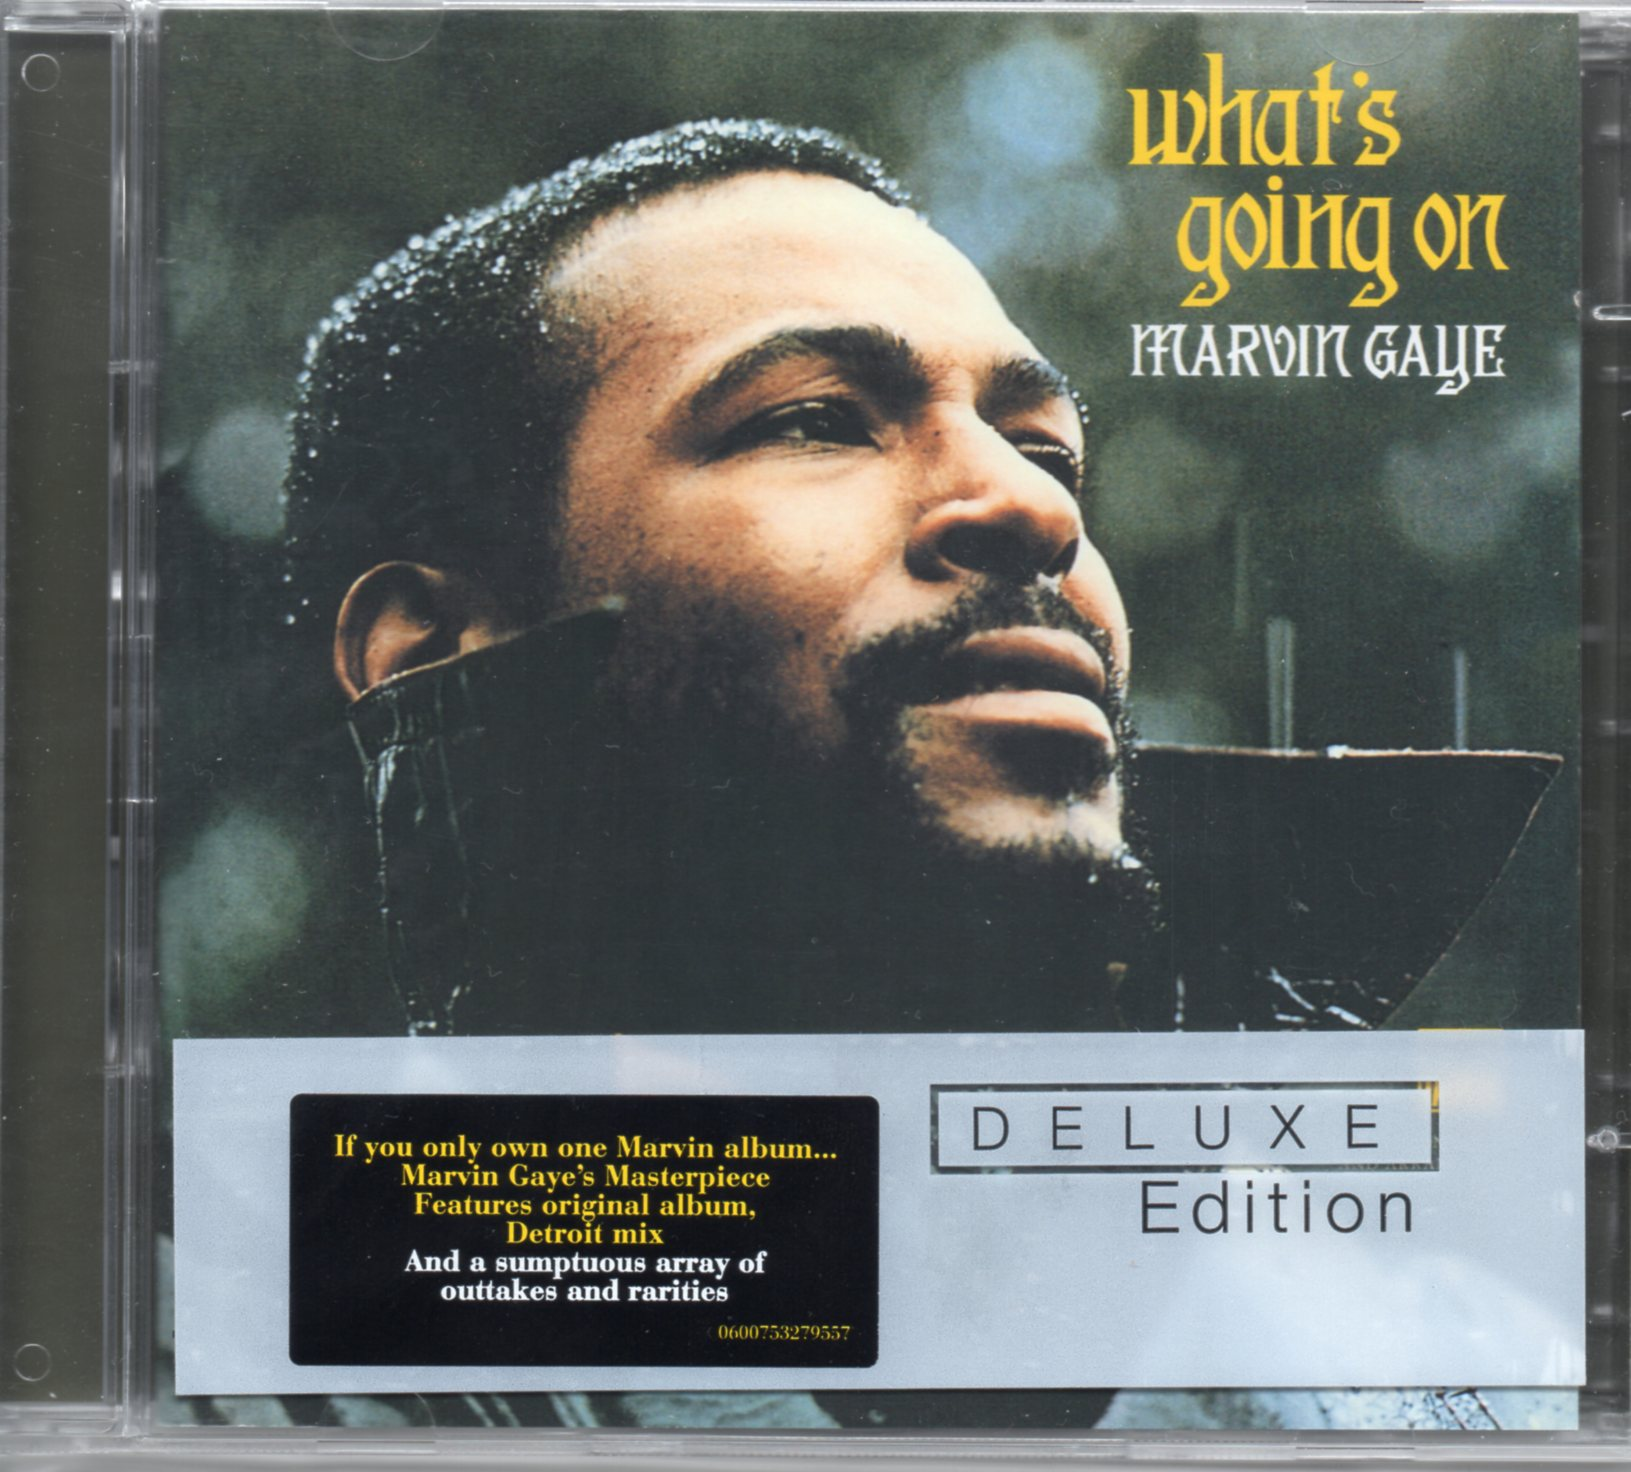 MARVIN GAYE - What's going on - DELUXE EDITION - - CD x 2